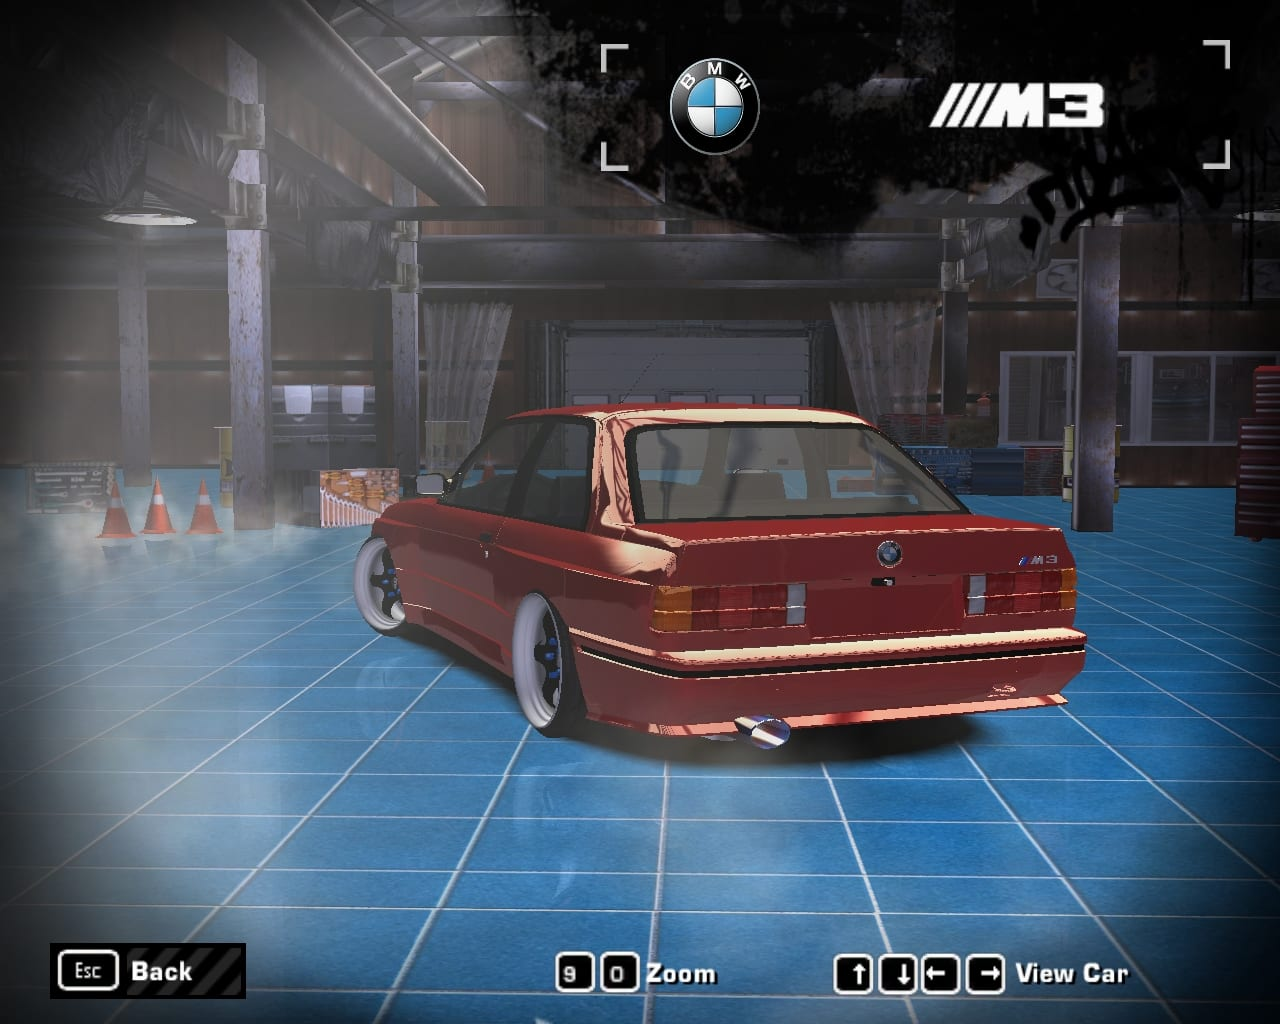 BMW M3 E30 (Wintershall) Mod for Need For Speed Most Wanted